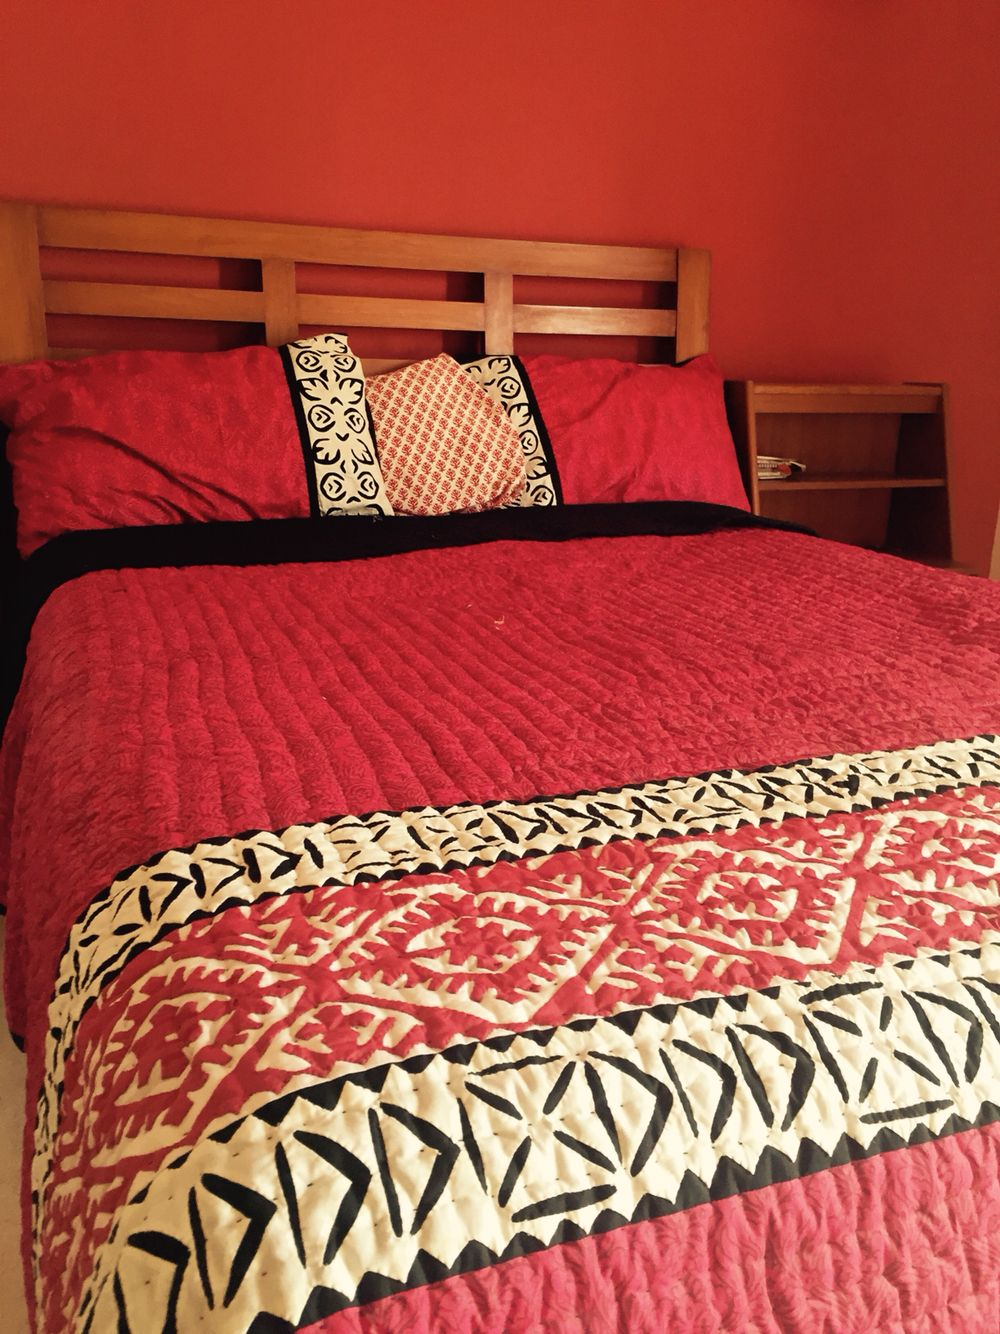 Bed sheets designs patchwork - Maroon With Black White Rilli